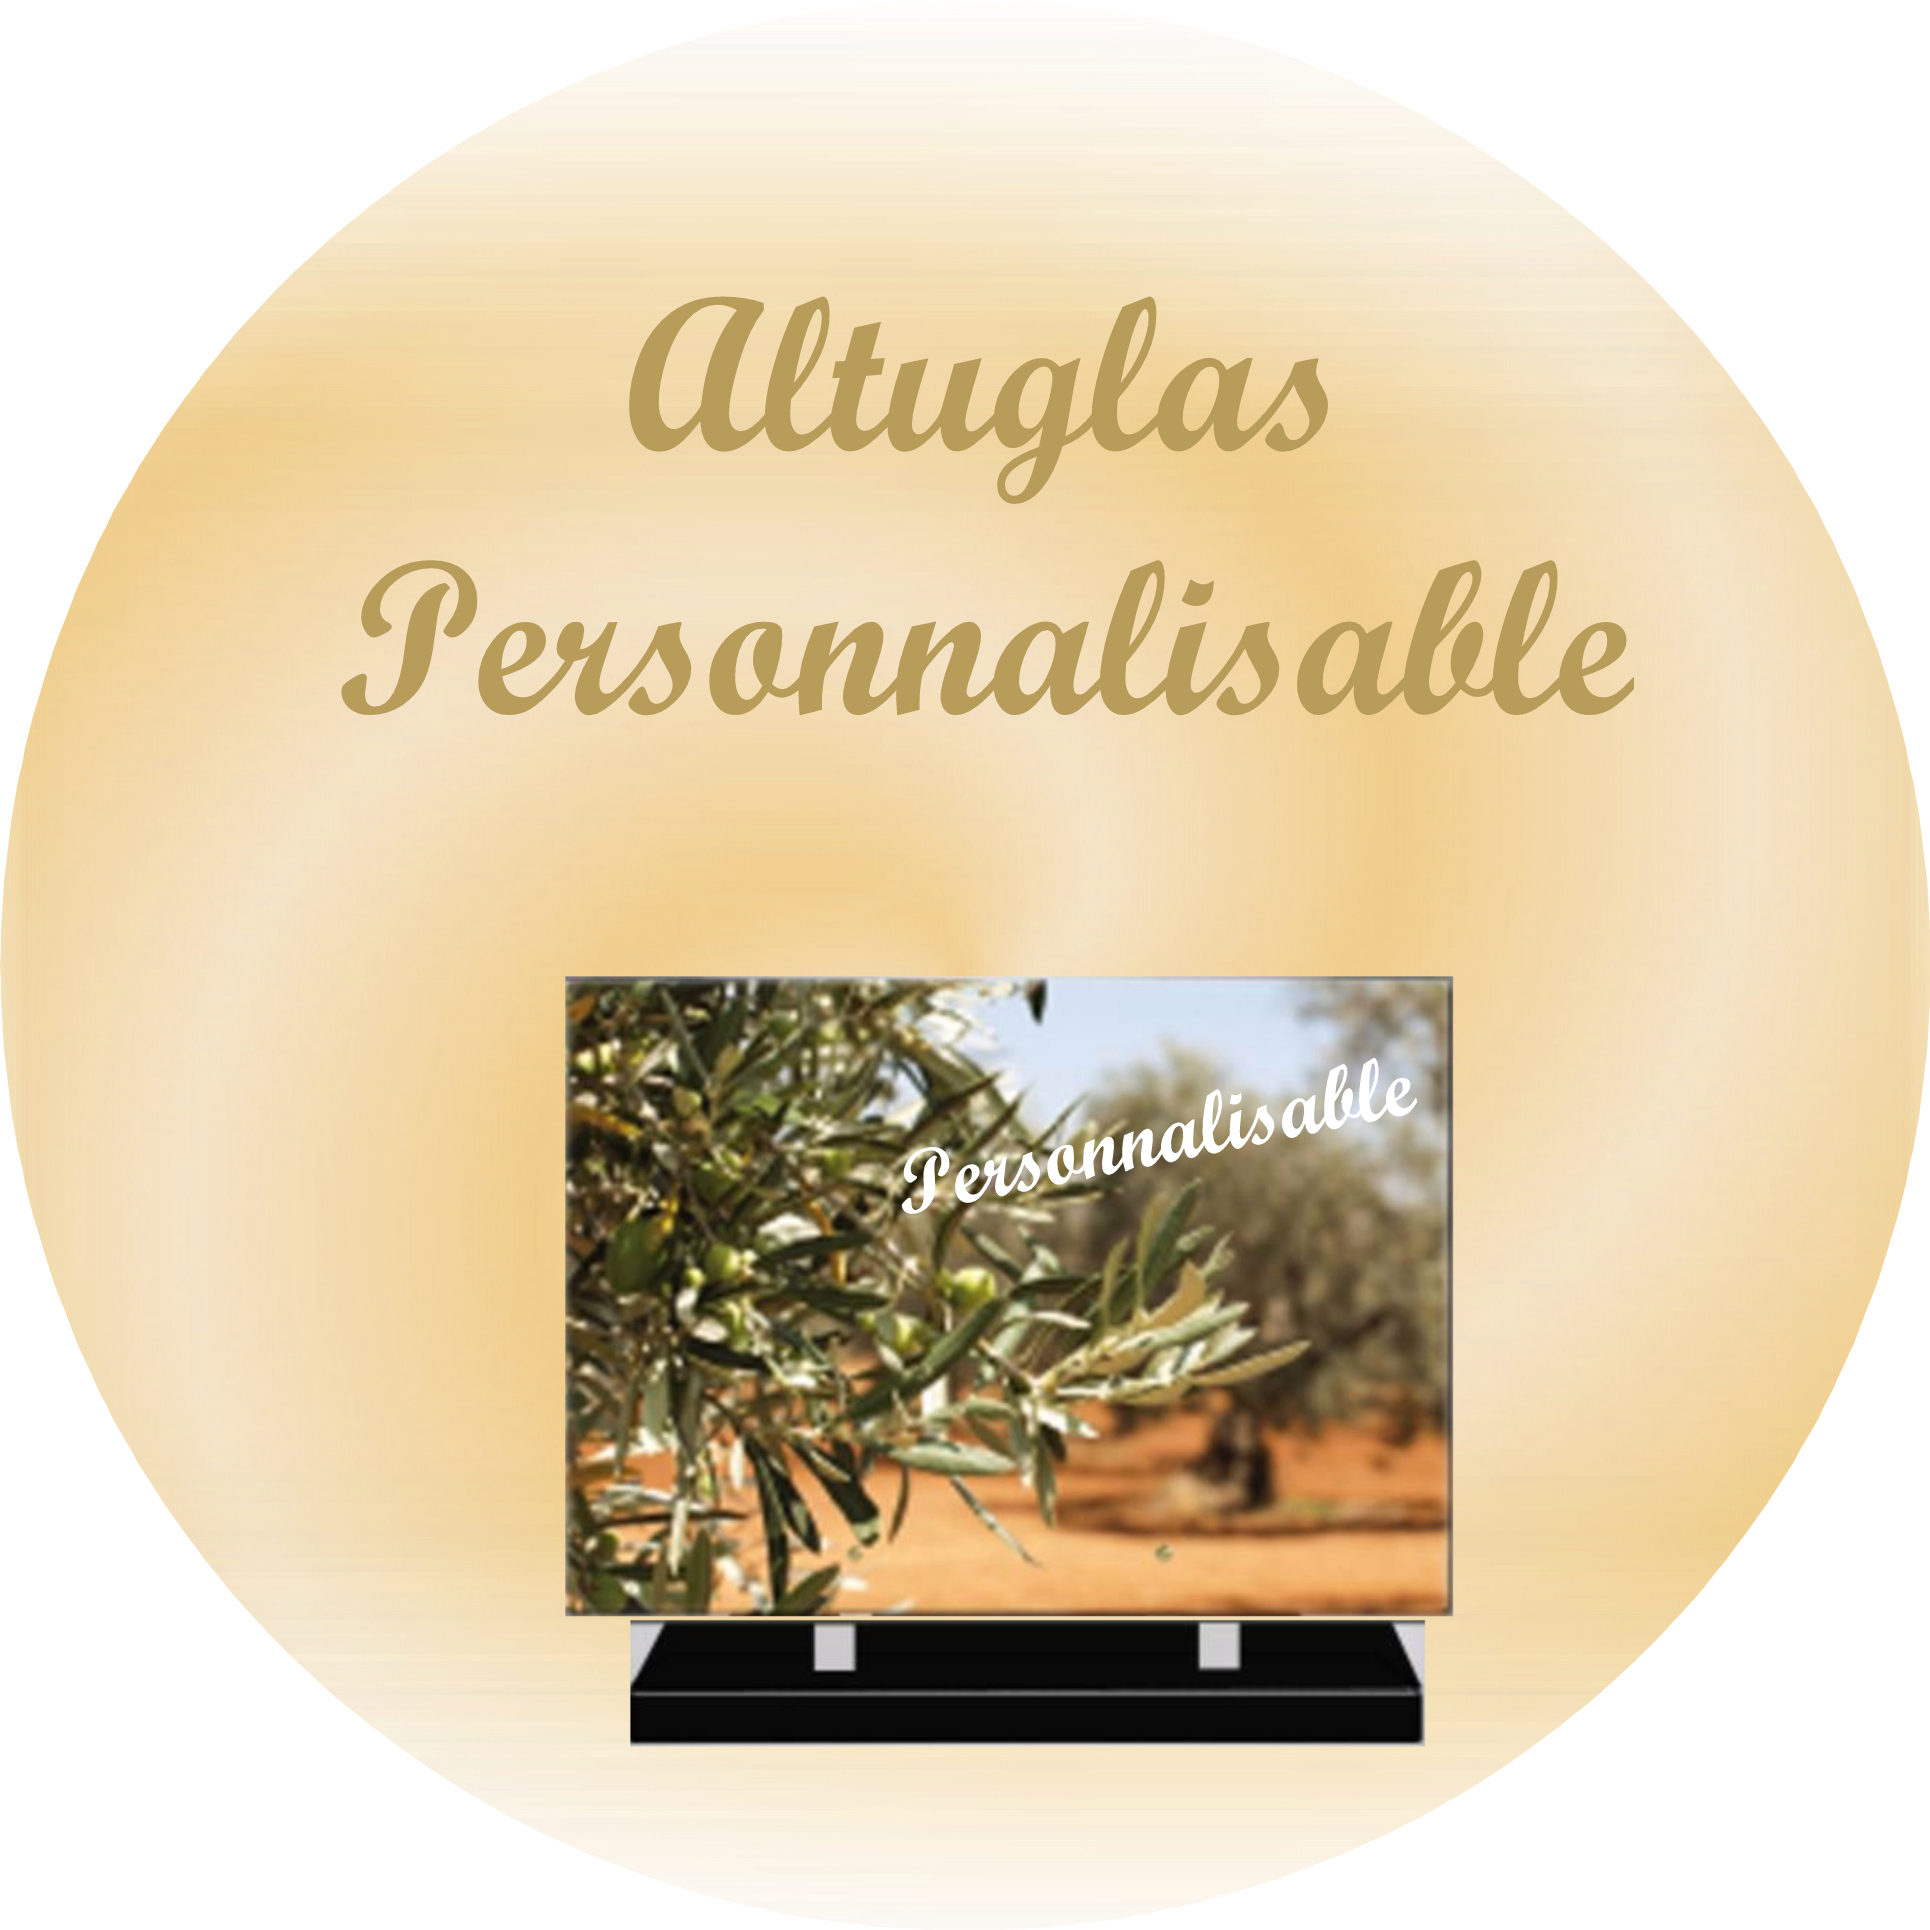 PLAQUES FUNERAIRES MODERNES PERSONNALISABLES RECTANGLE AUDRESSELLES